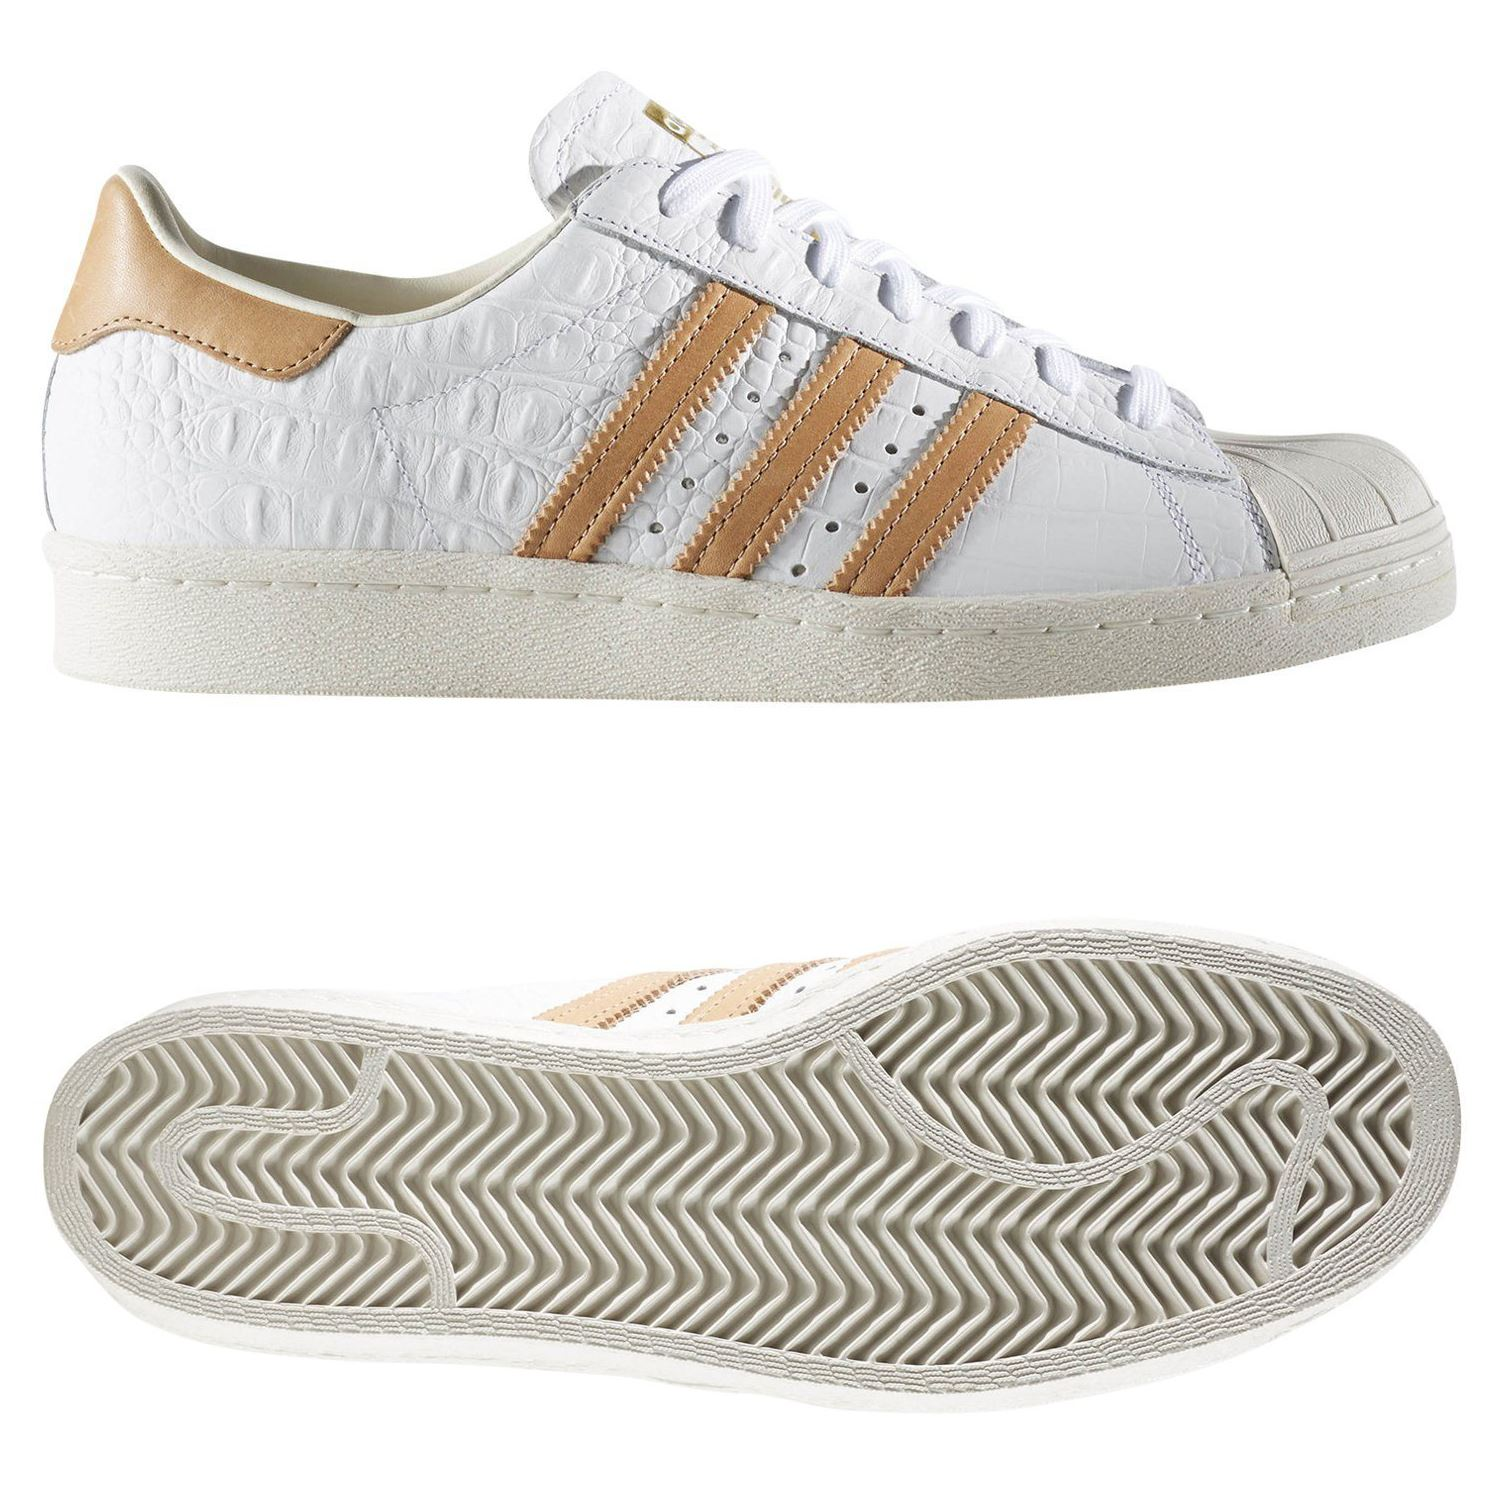 watch ac3eb 02c0d SUPERSTAR 80 entrenadores blanco zapatos zapatillas RETRO raro Hombres  Adidas ORIGINALS